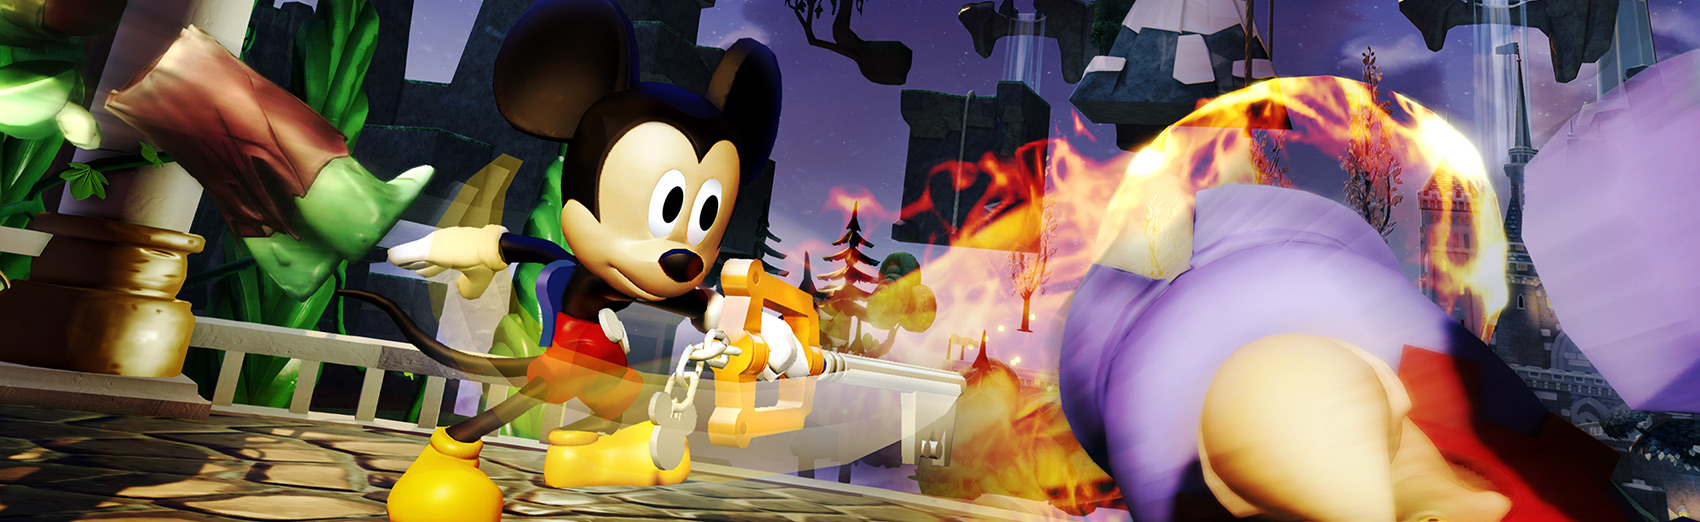 Disney Infinity 3.0 Sweepstakes – King Mickey Power Disc